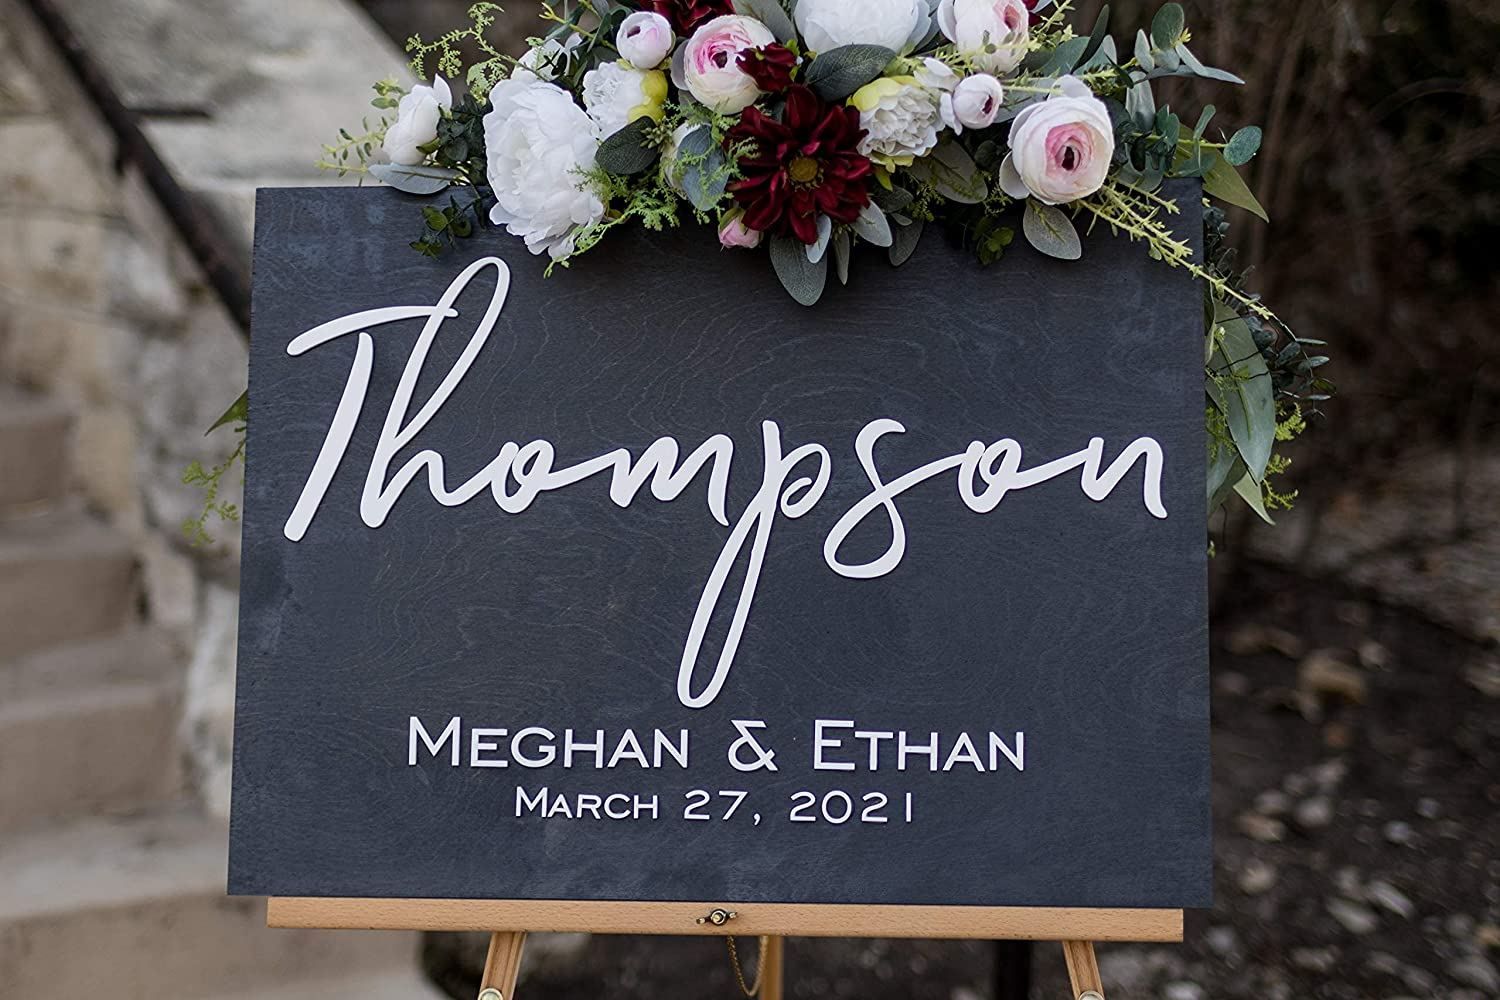 3D Last Name Welcome Sign for Weddings. Personalized Wooden Wedding Welcome Sign. Custom Wedding Decor. Customized with Your Names and Dates. Wedding Ceremony Decorations